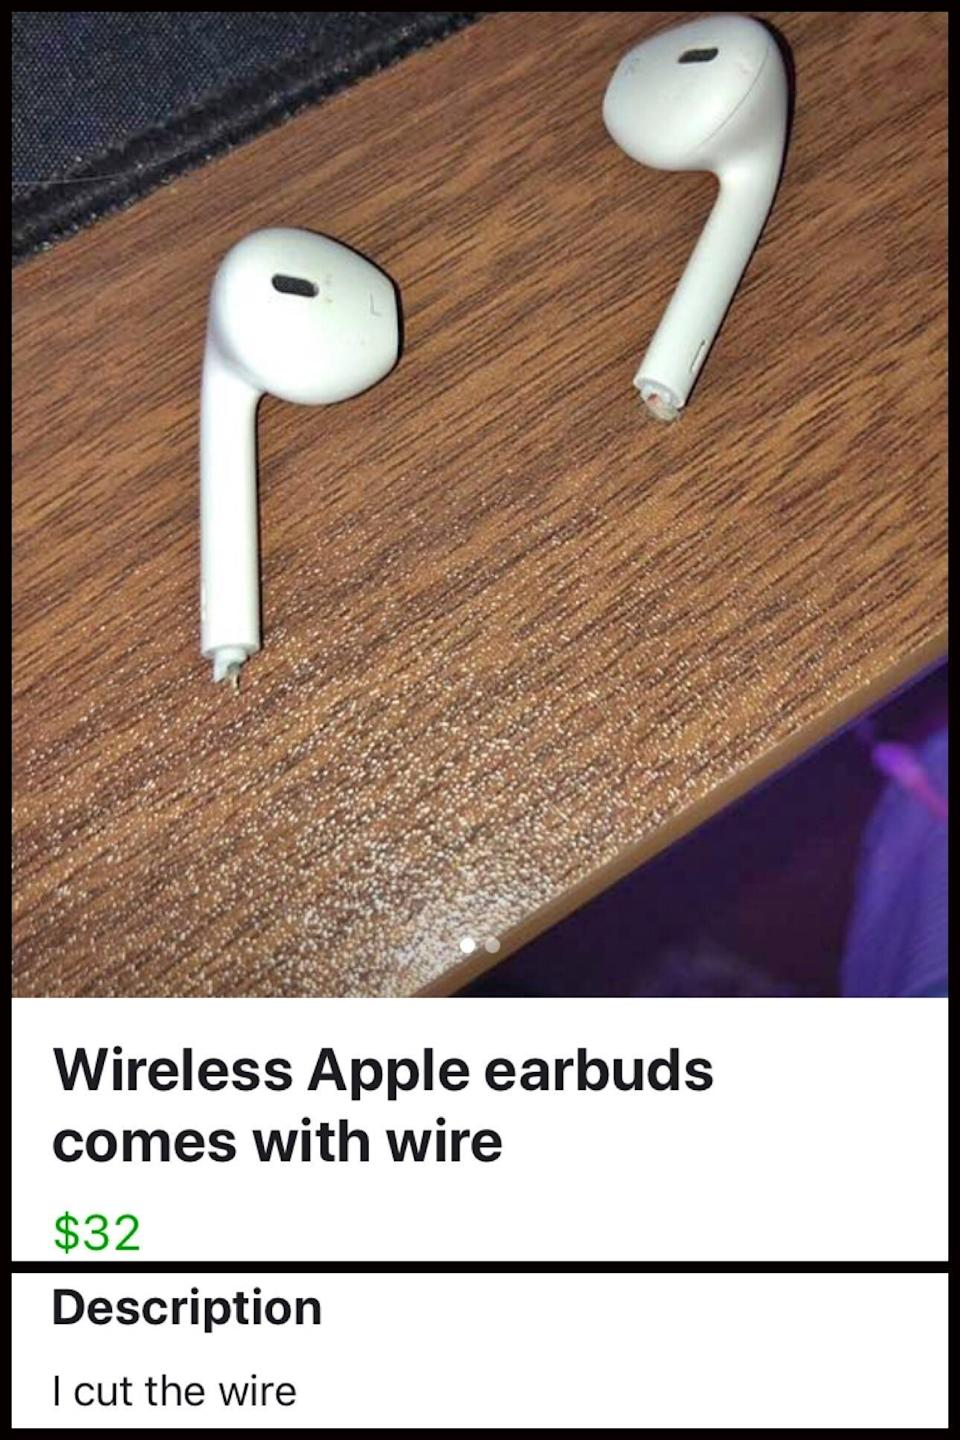 someone selling wireless apple earbuds with the wire cut off